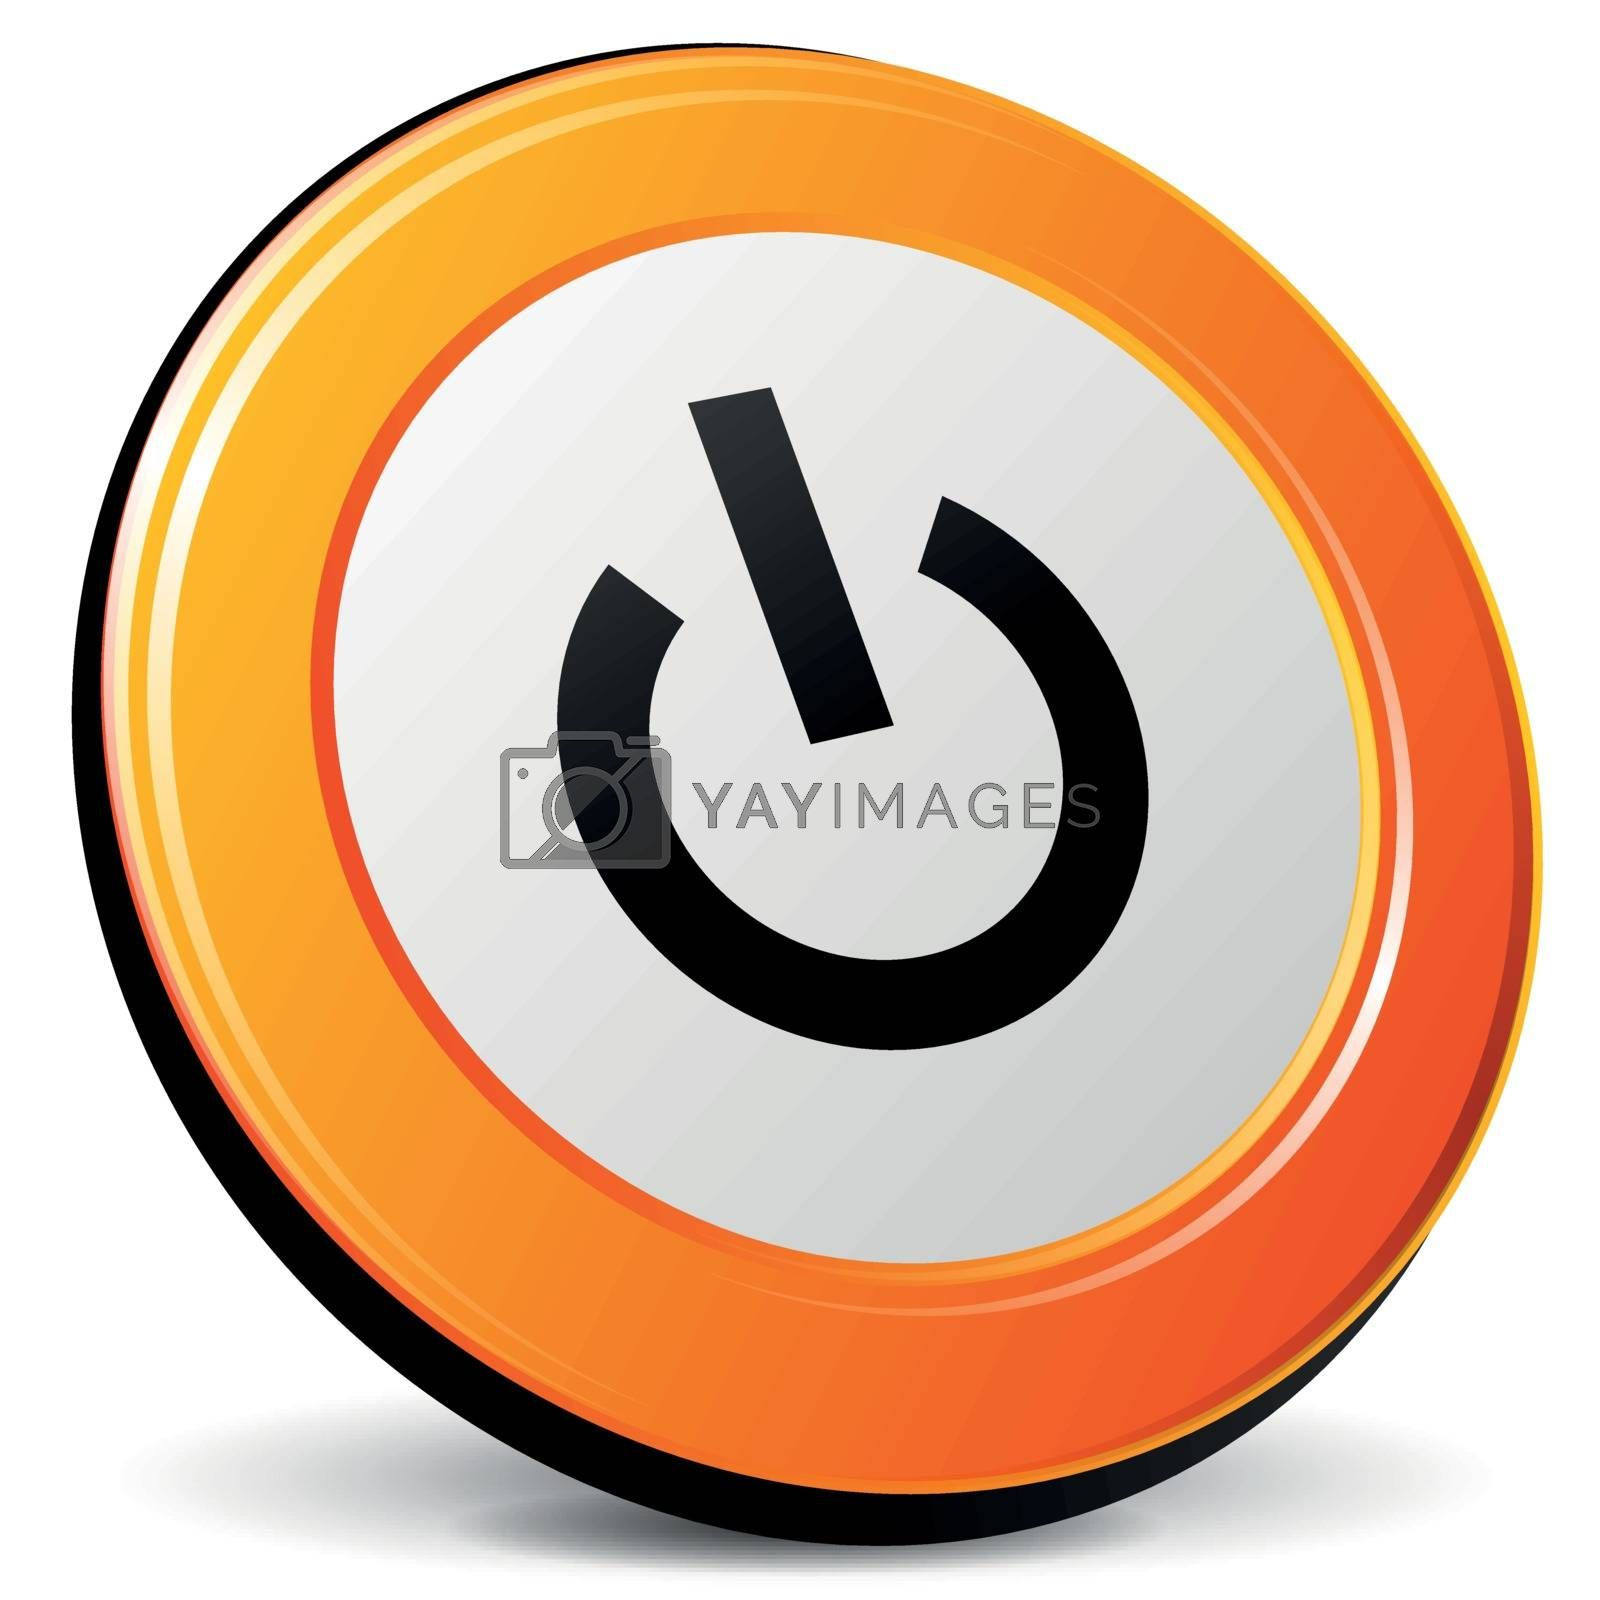 Royalty free image of Vector start icon by nickylarson974